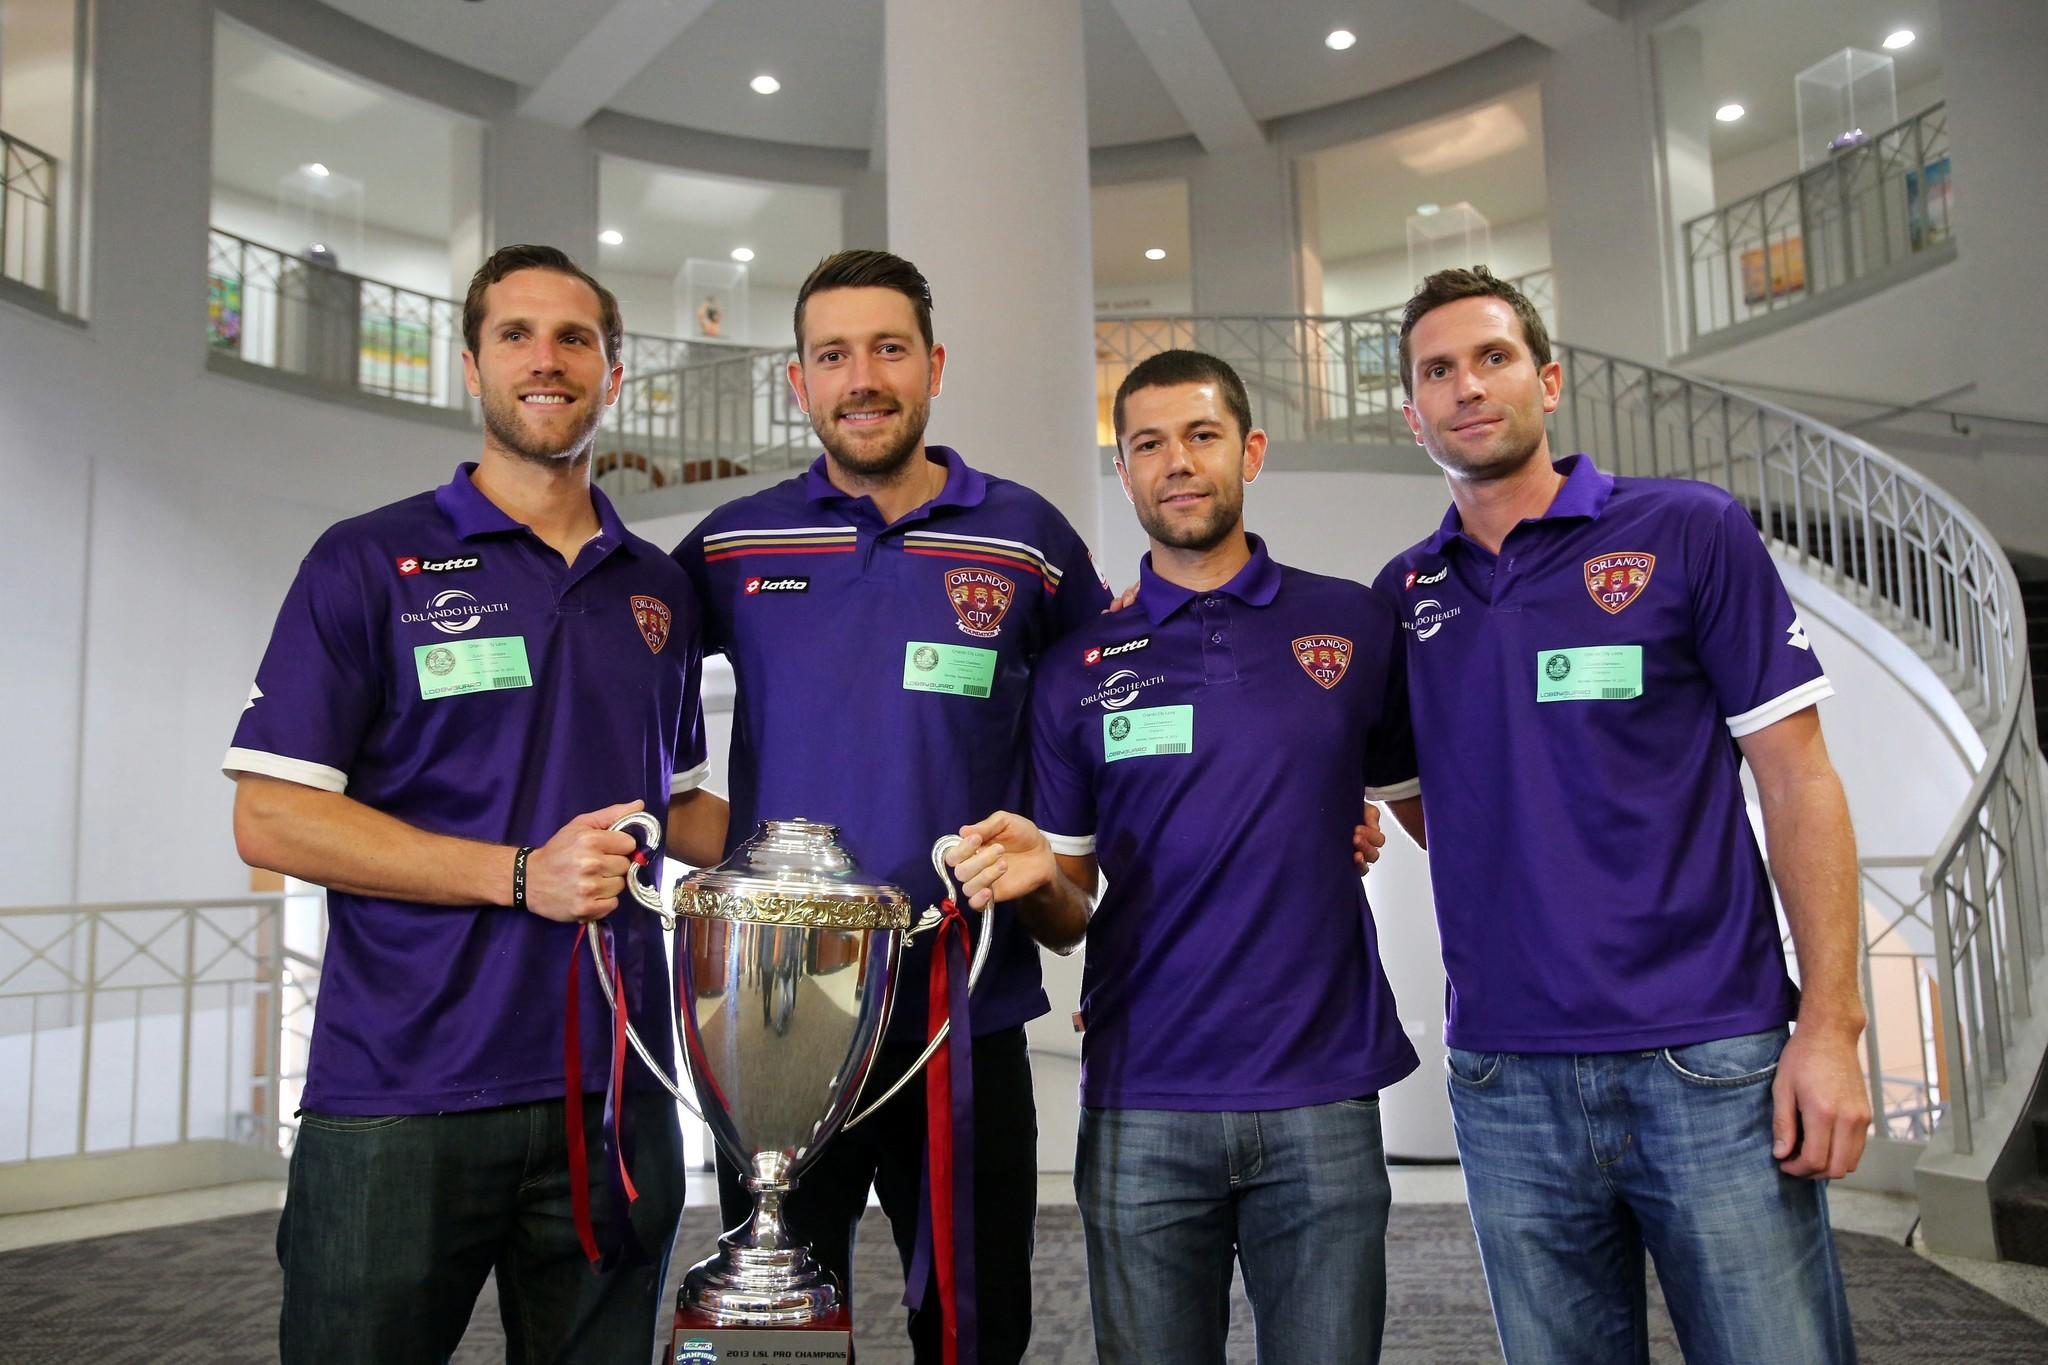 Orlando City Soccer players Rob Valentino, Luke Boden, Anthony Pulis, and Ian Fuller pose for a photo after the Orlando City Council recognized the Lions for their win in the USL Pro Championship, on Monday, September 16, 2013, during a City Council meeting. (Ricardo Ramirez Buxeda / Orlando Sentinel)